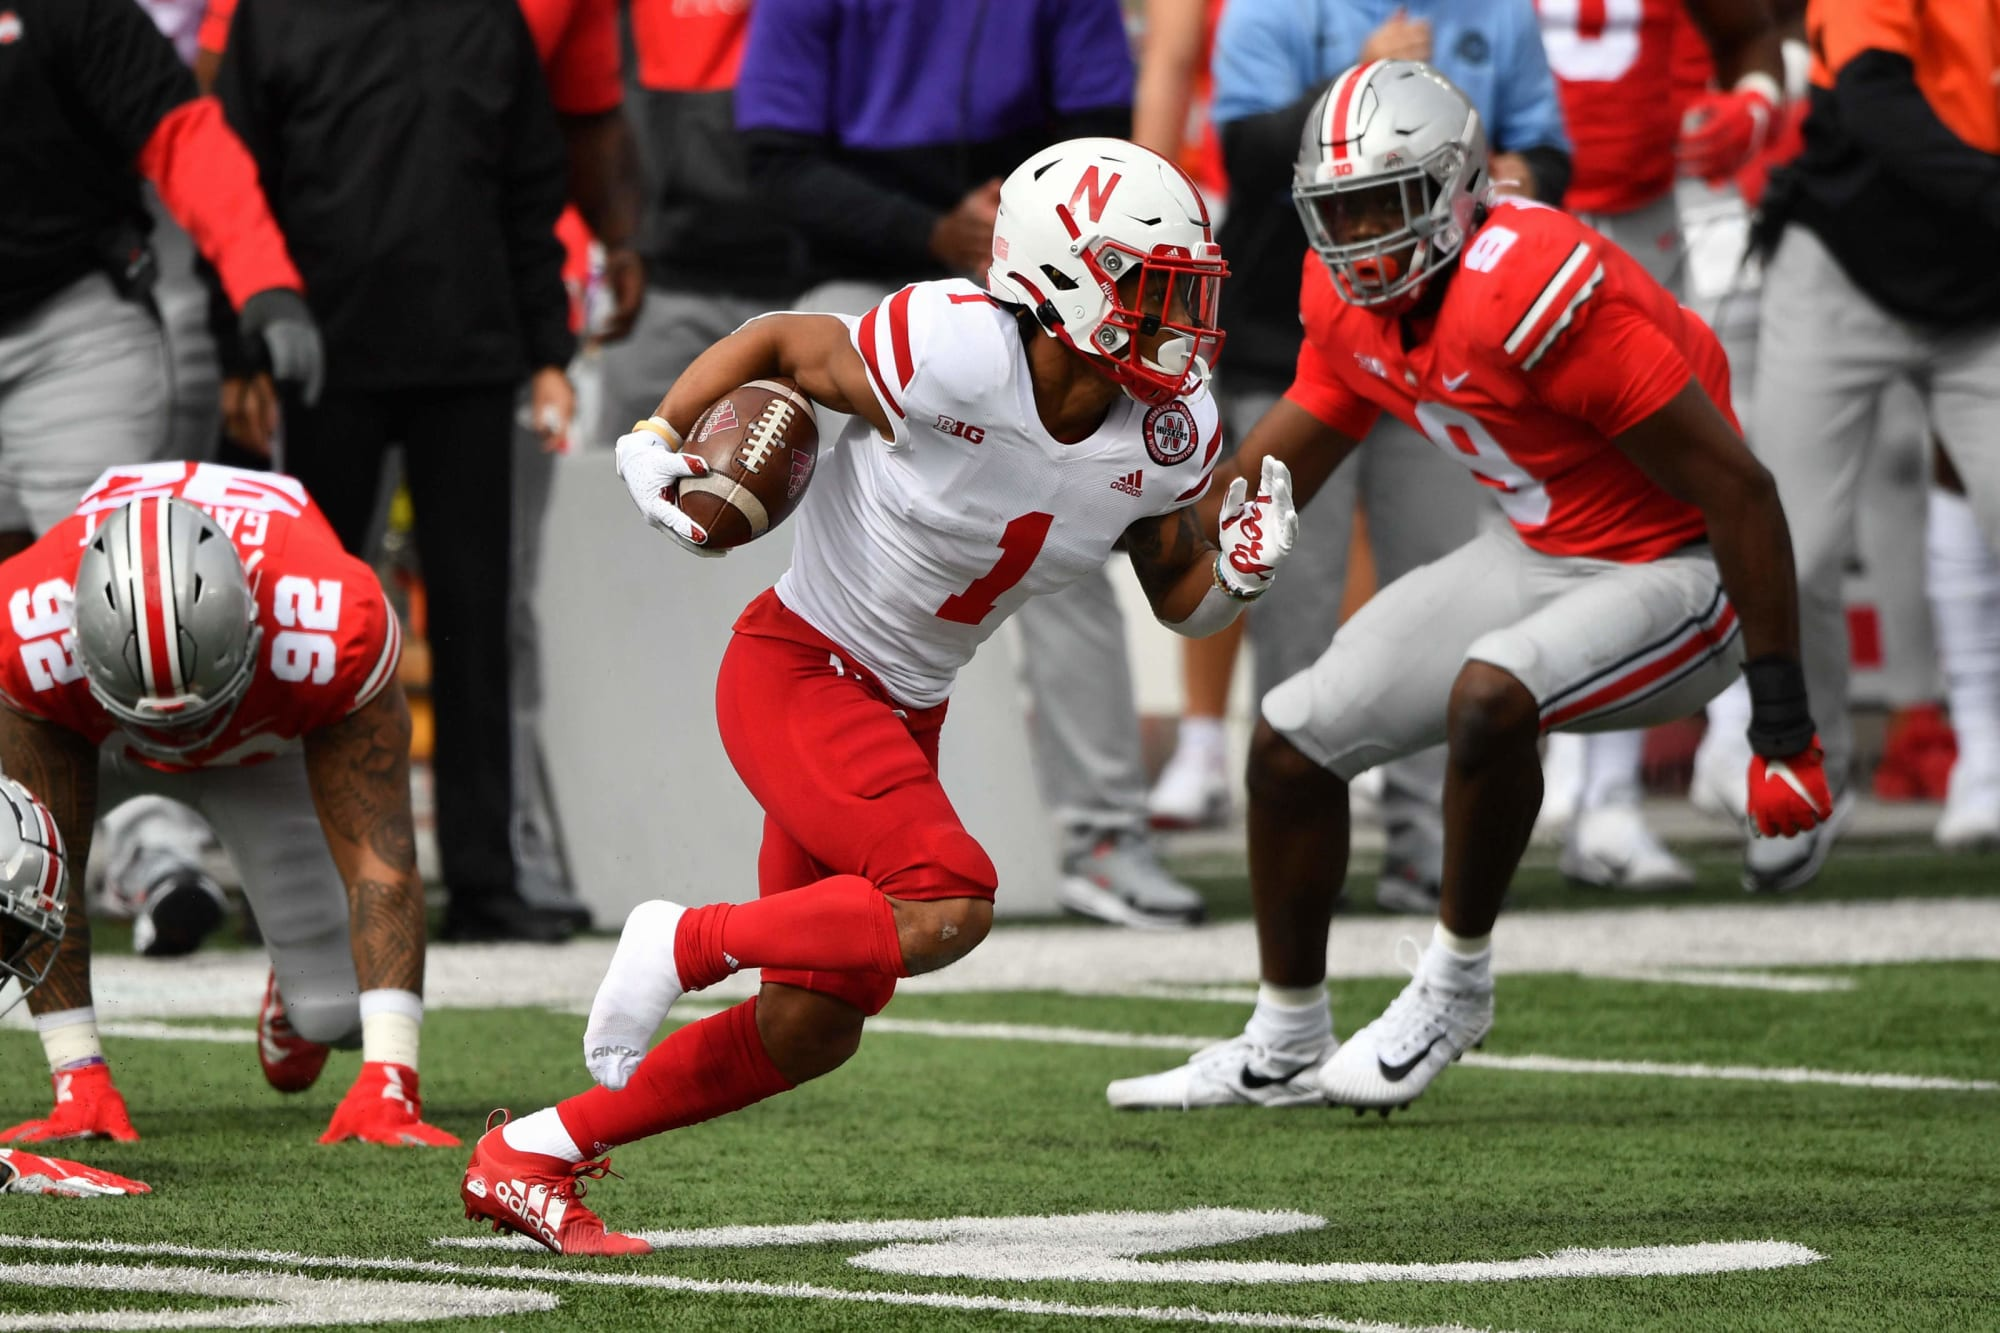 Ohio State football: Does OSU have a trap game in 2021?